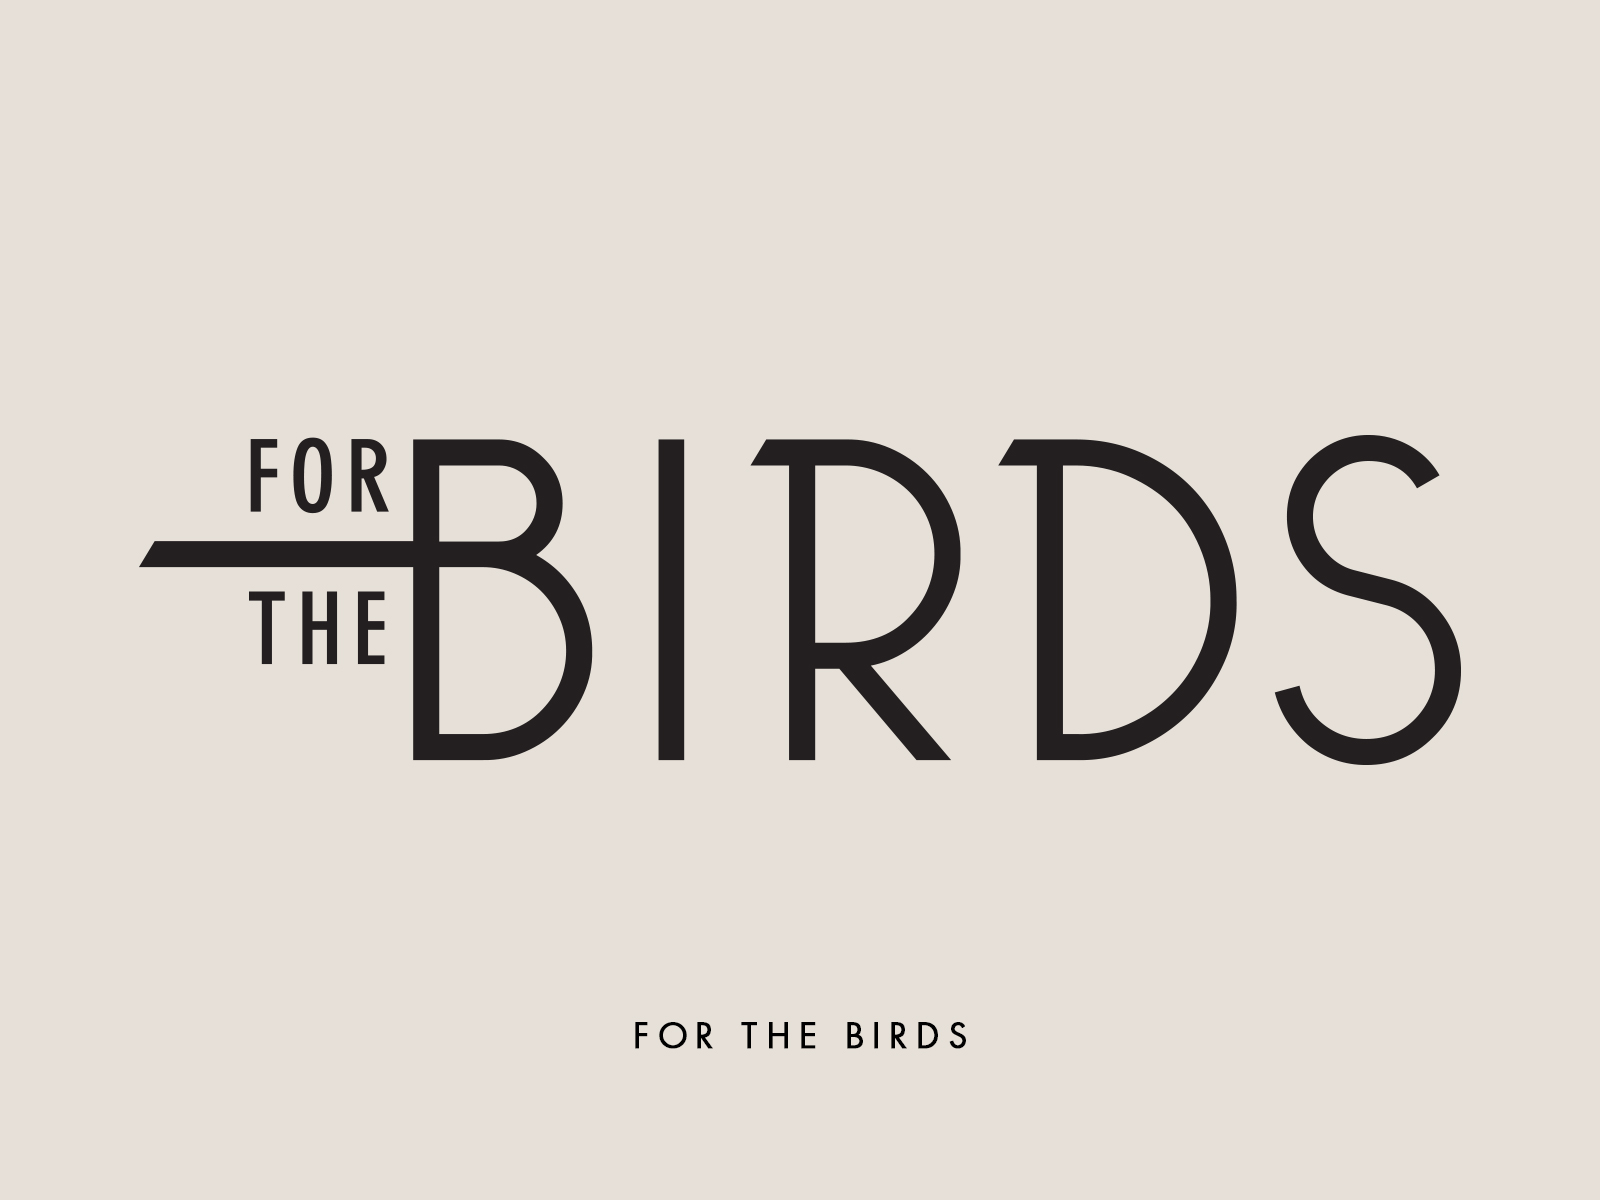 logo_forthebirds.jpg